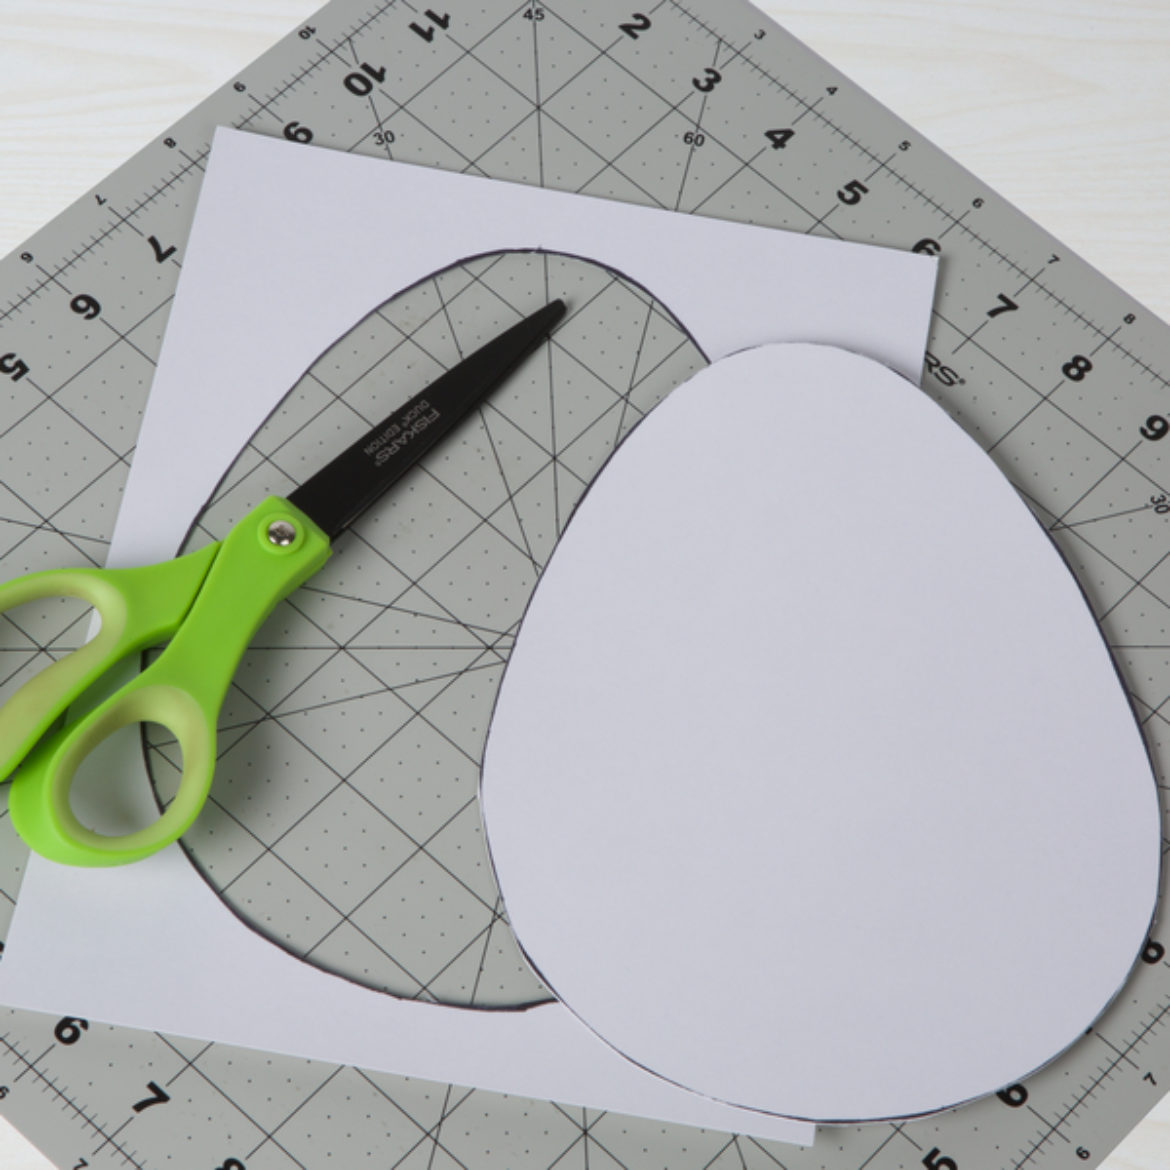 Egg shape drawn and cut out